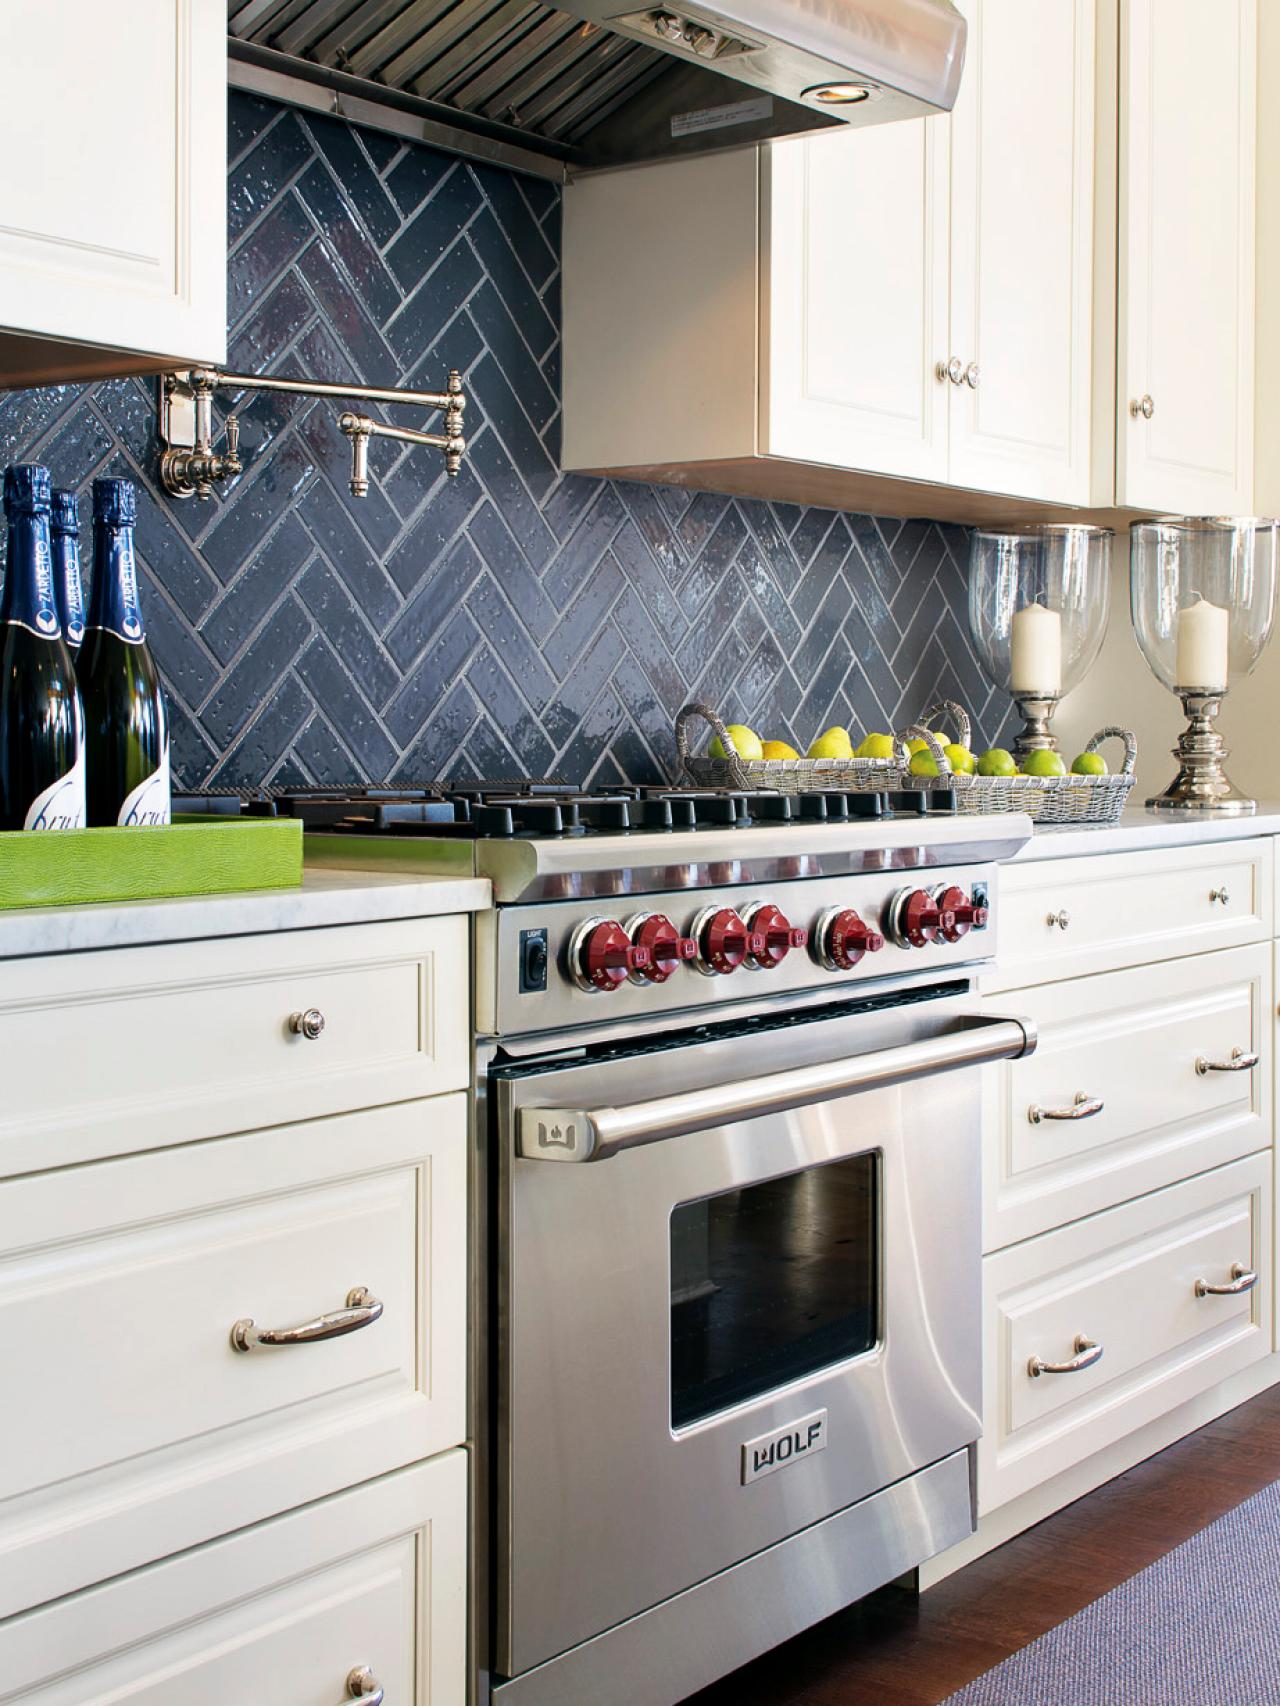 Painting kitchen backsplashes pictures ideas from hgtv hgtv dailygadgetfo Choice Image